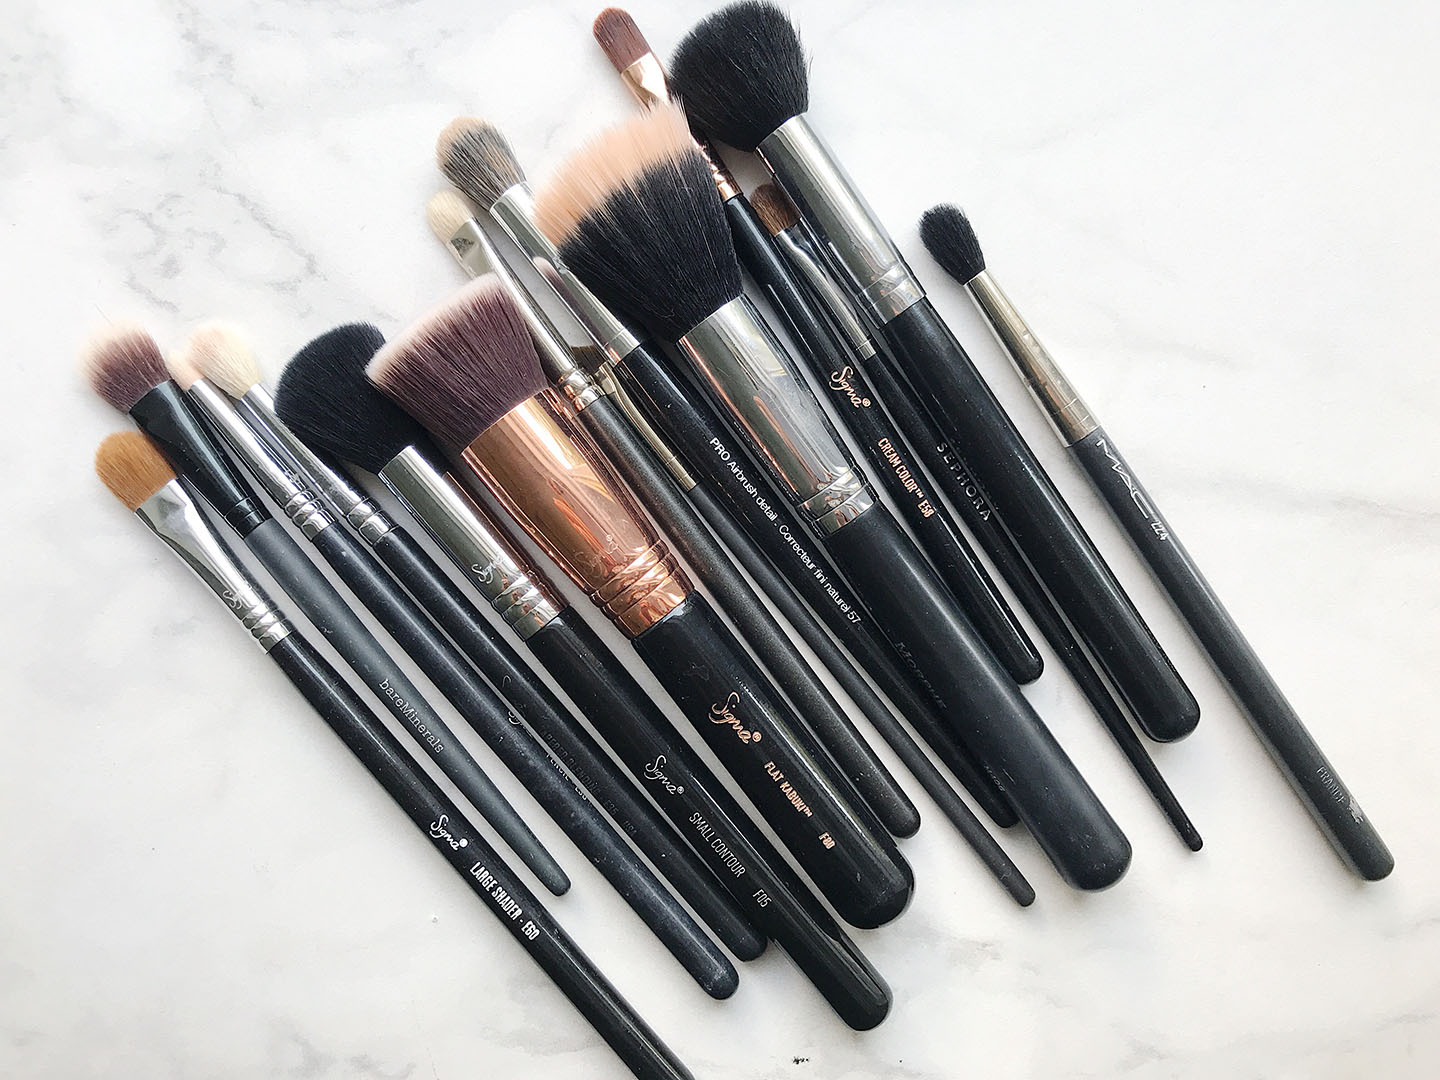 All Of My Favorite Makeup Brushes by Brighter Darling